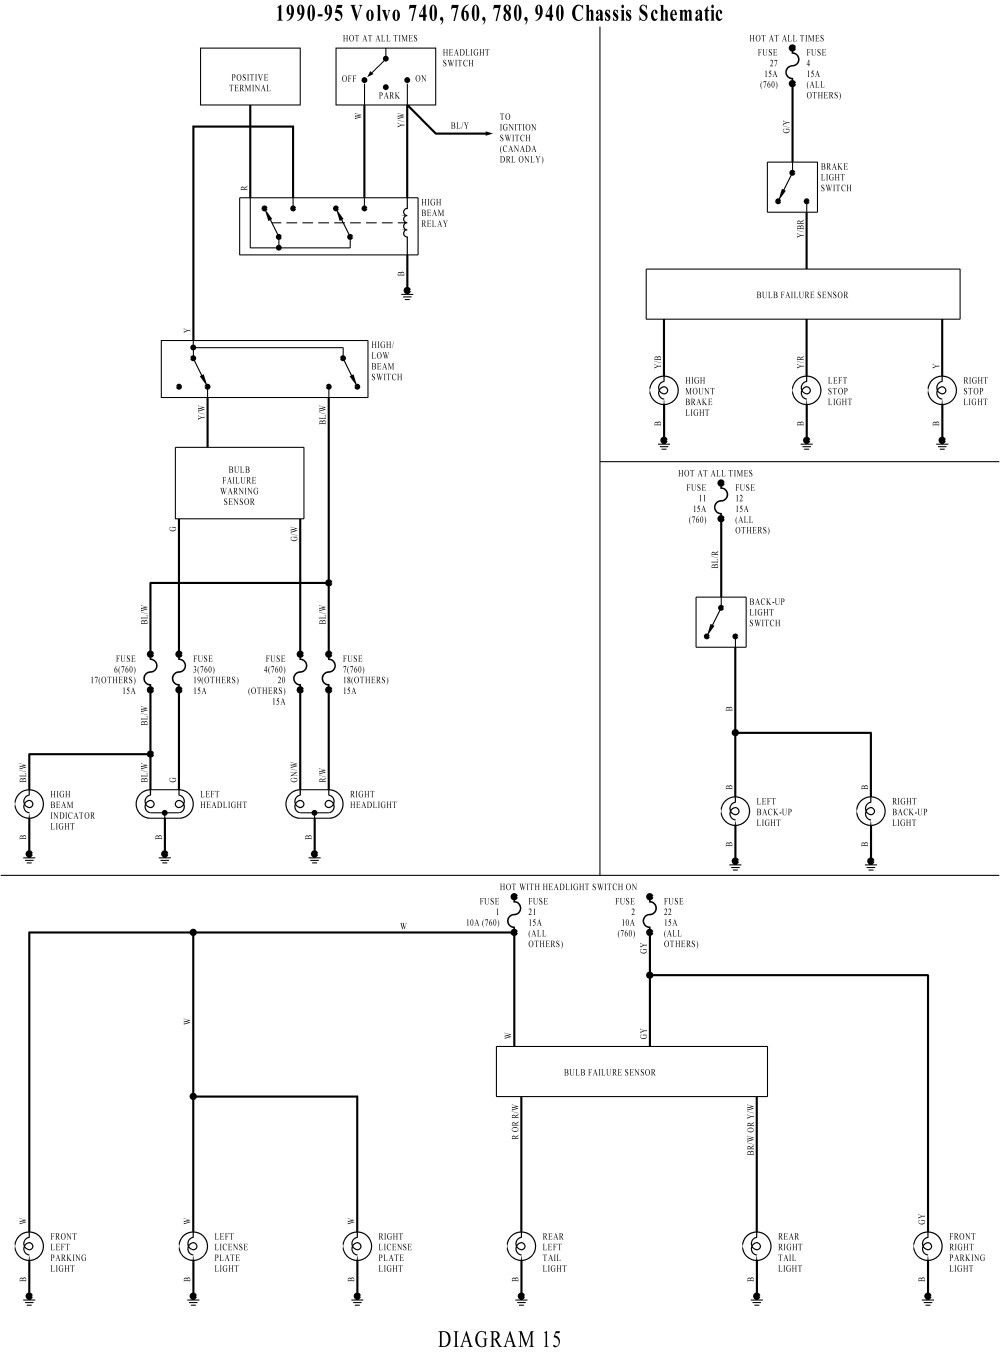 wiring diagram 1990 volvo wagon wiring diagram yer 1990 volvo 740 gle wagon engine diagram wiring [ 1000 x 1352 Pixel ]